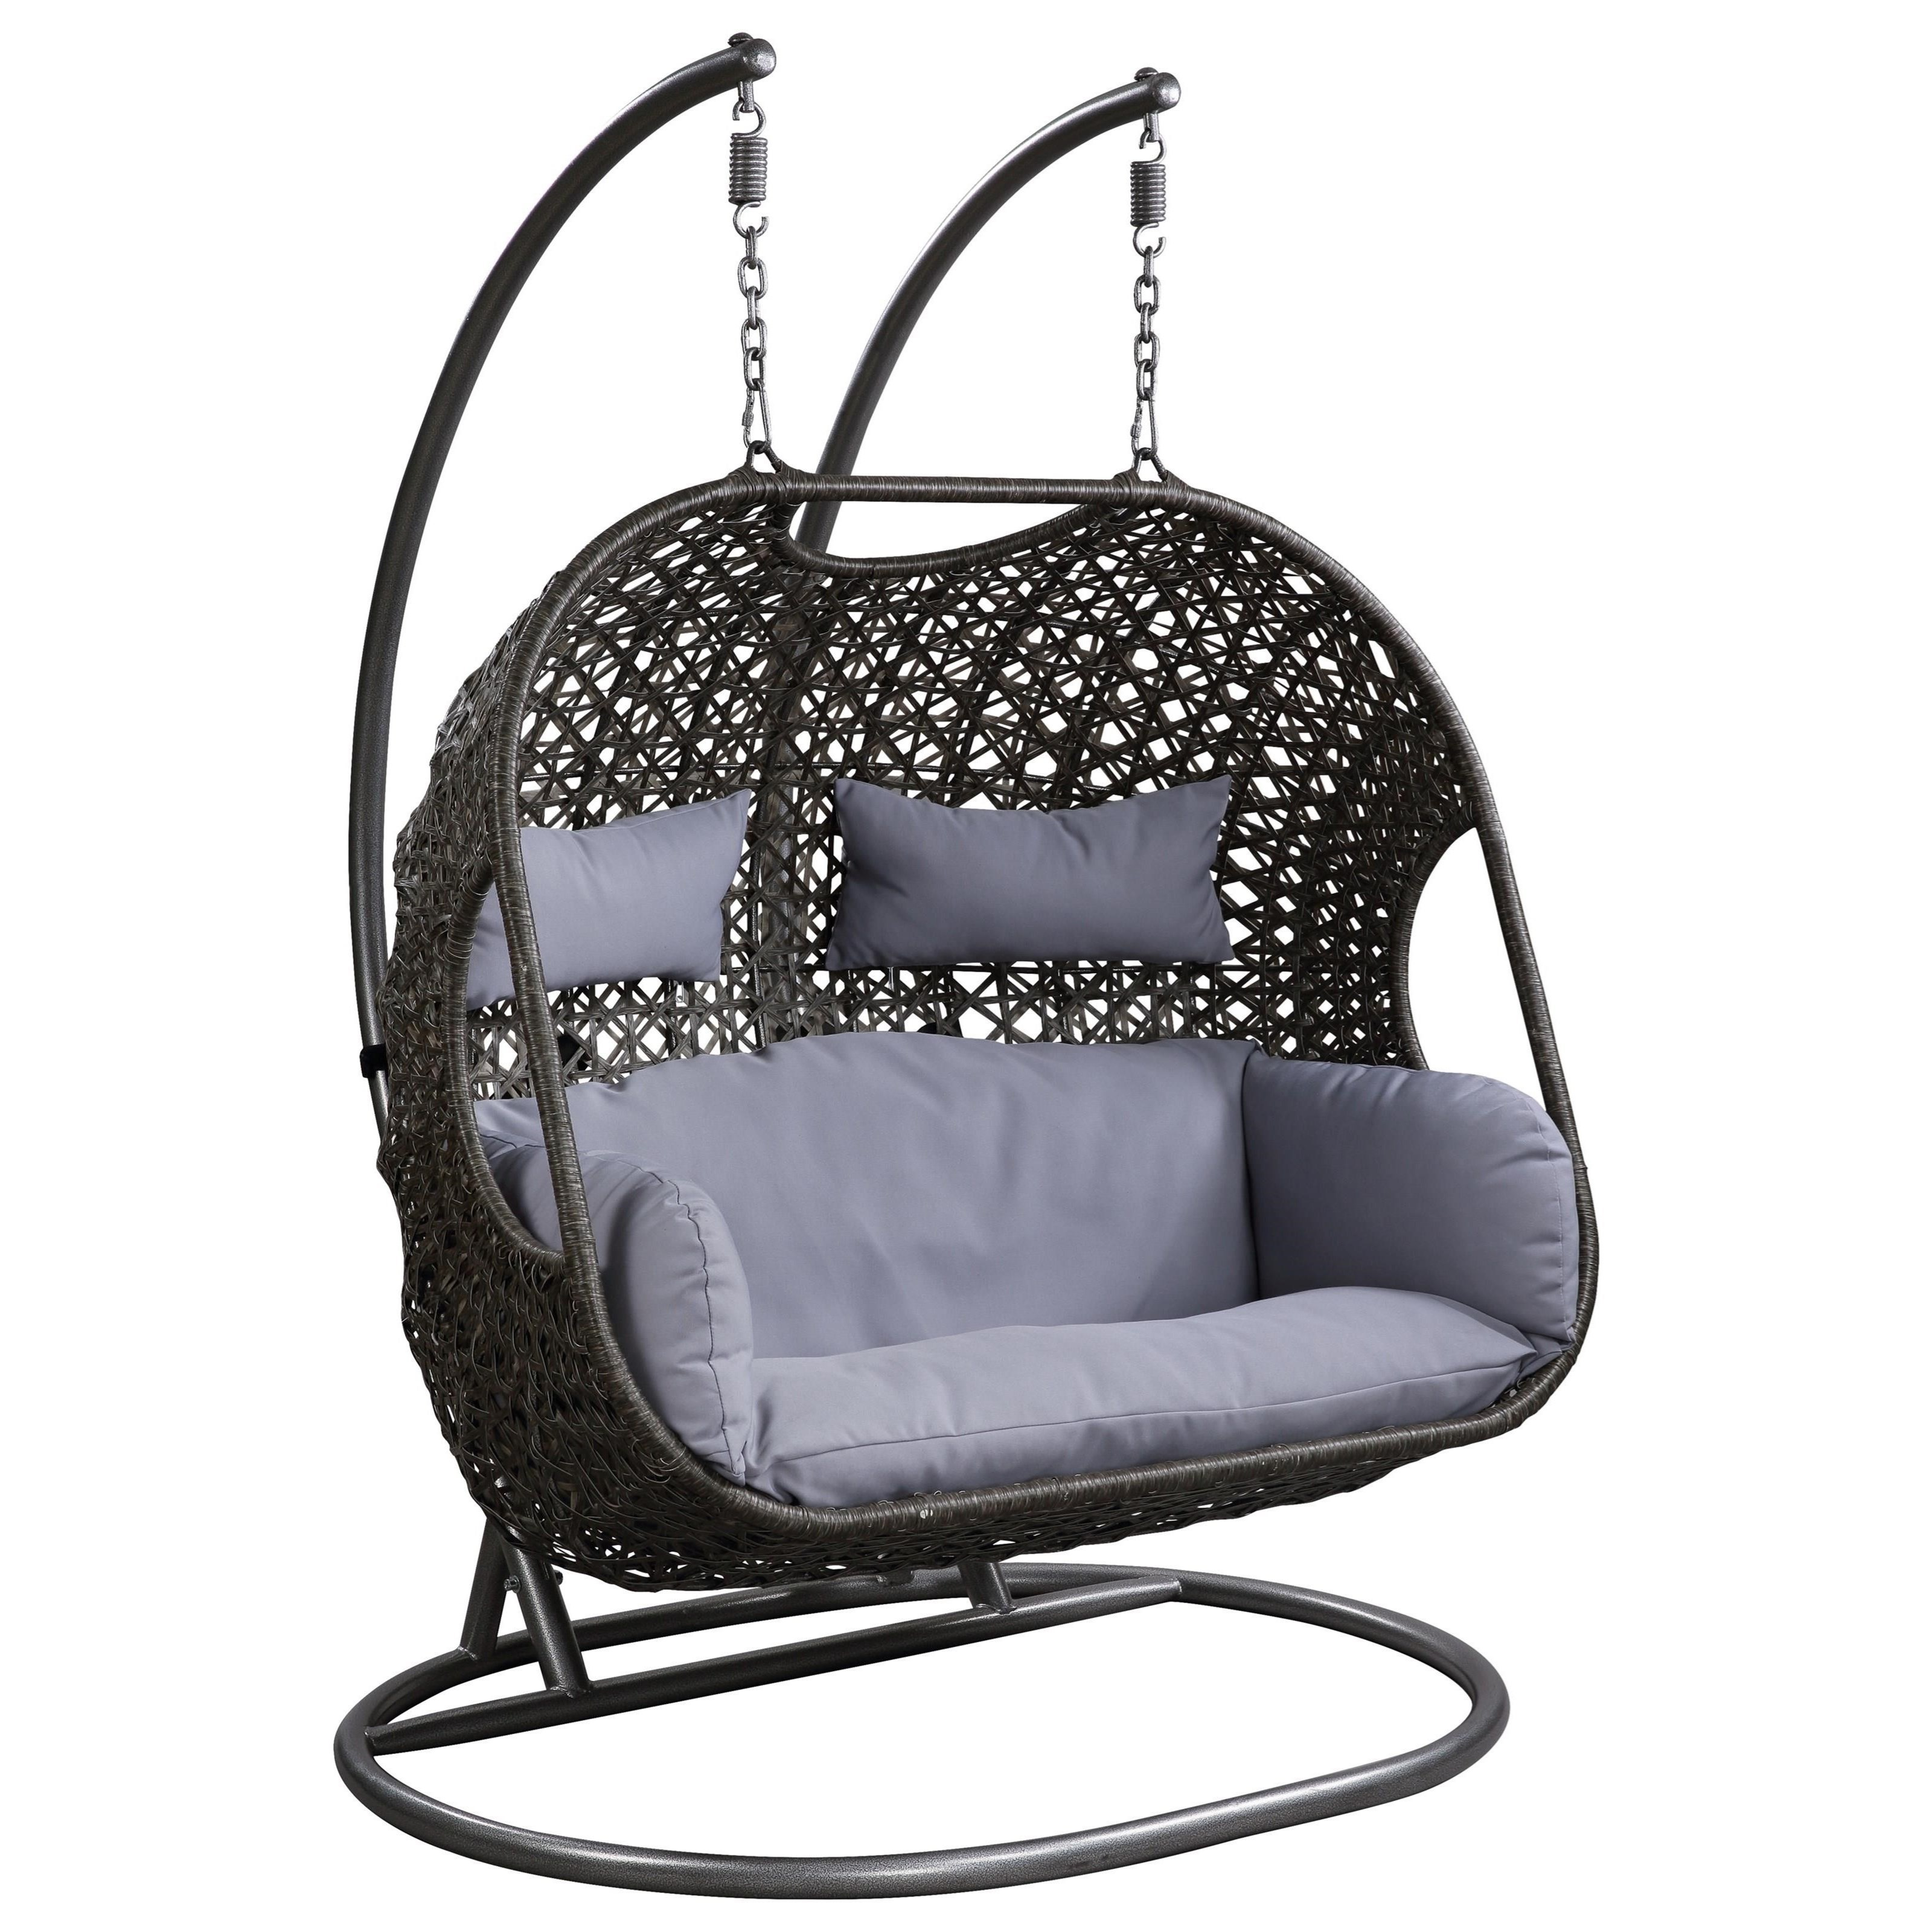 45084 patio swing chair with stand